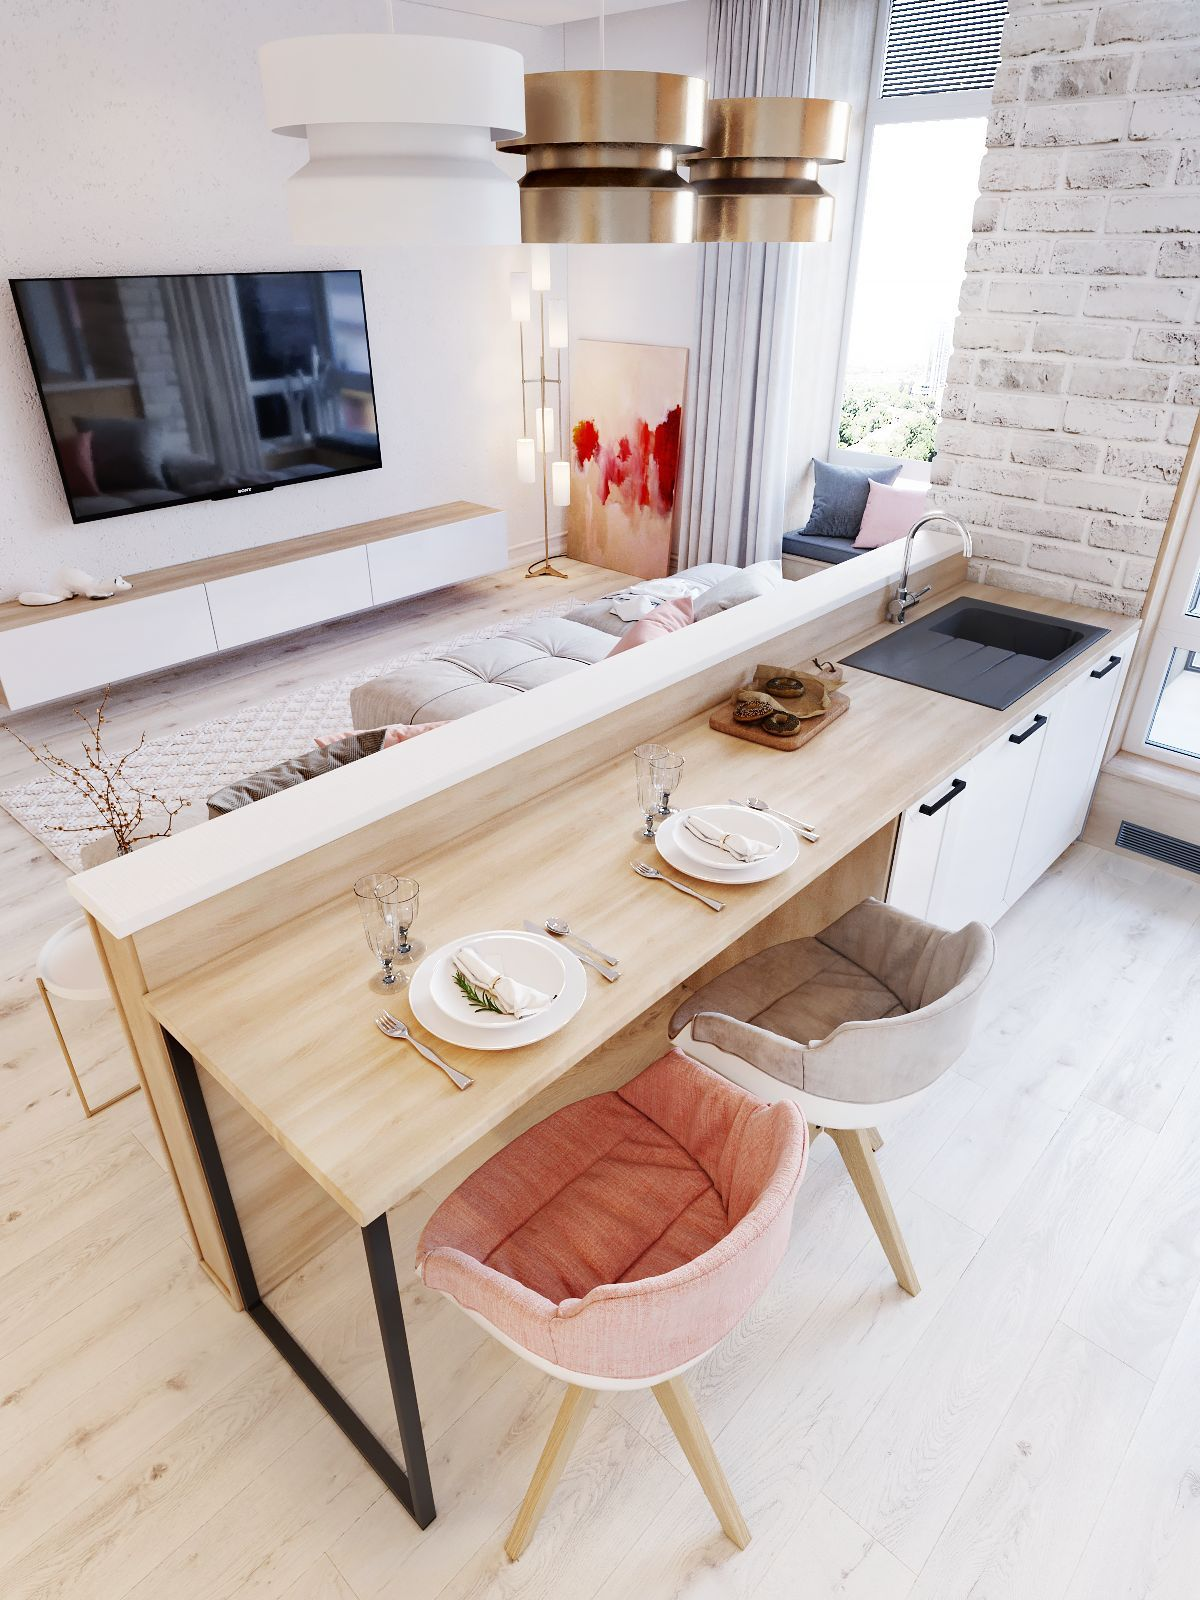 40 Amazing Small Apartment Decorating On A Budget images